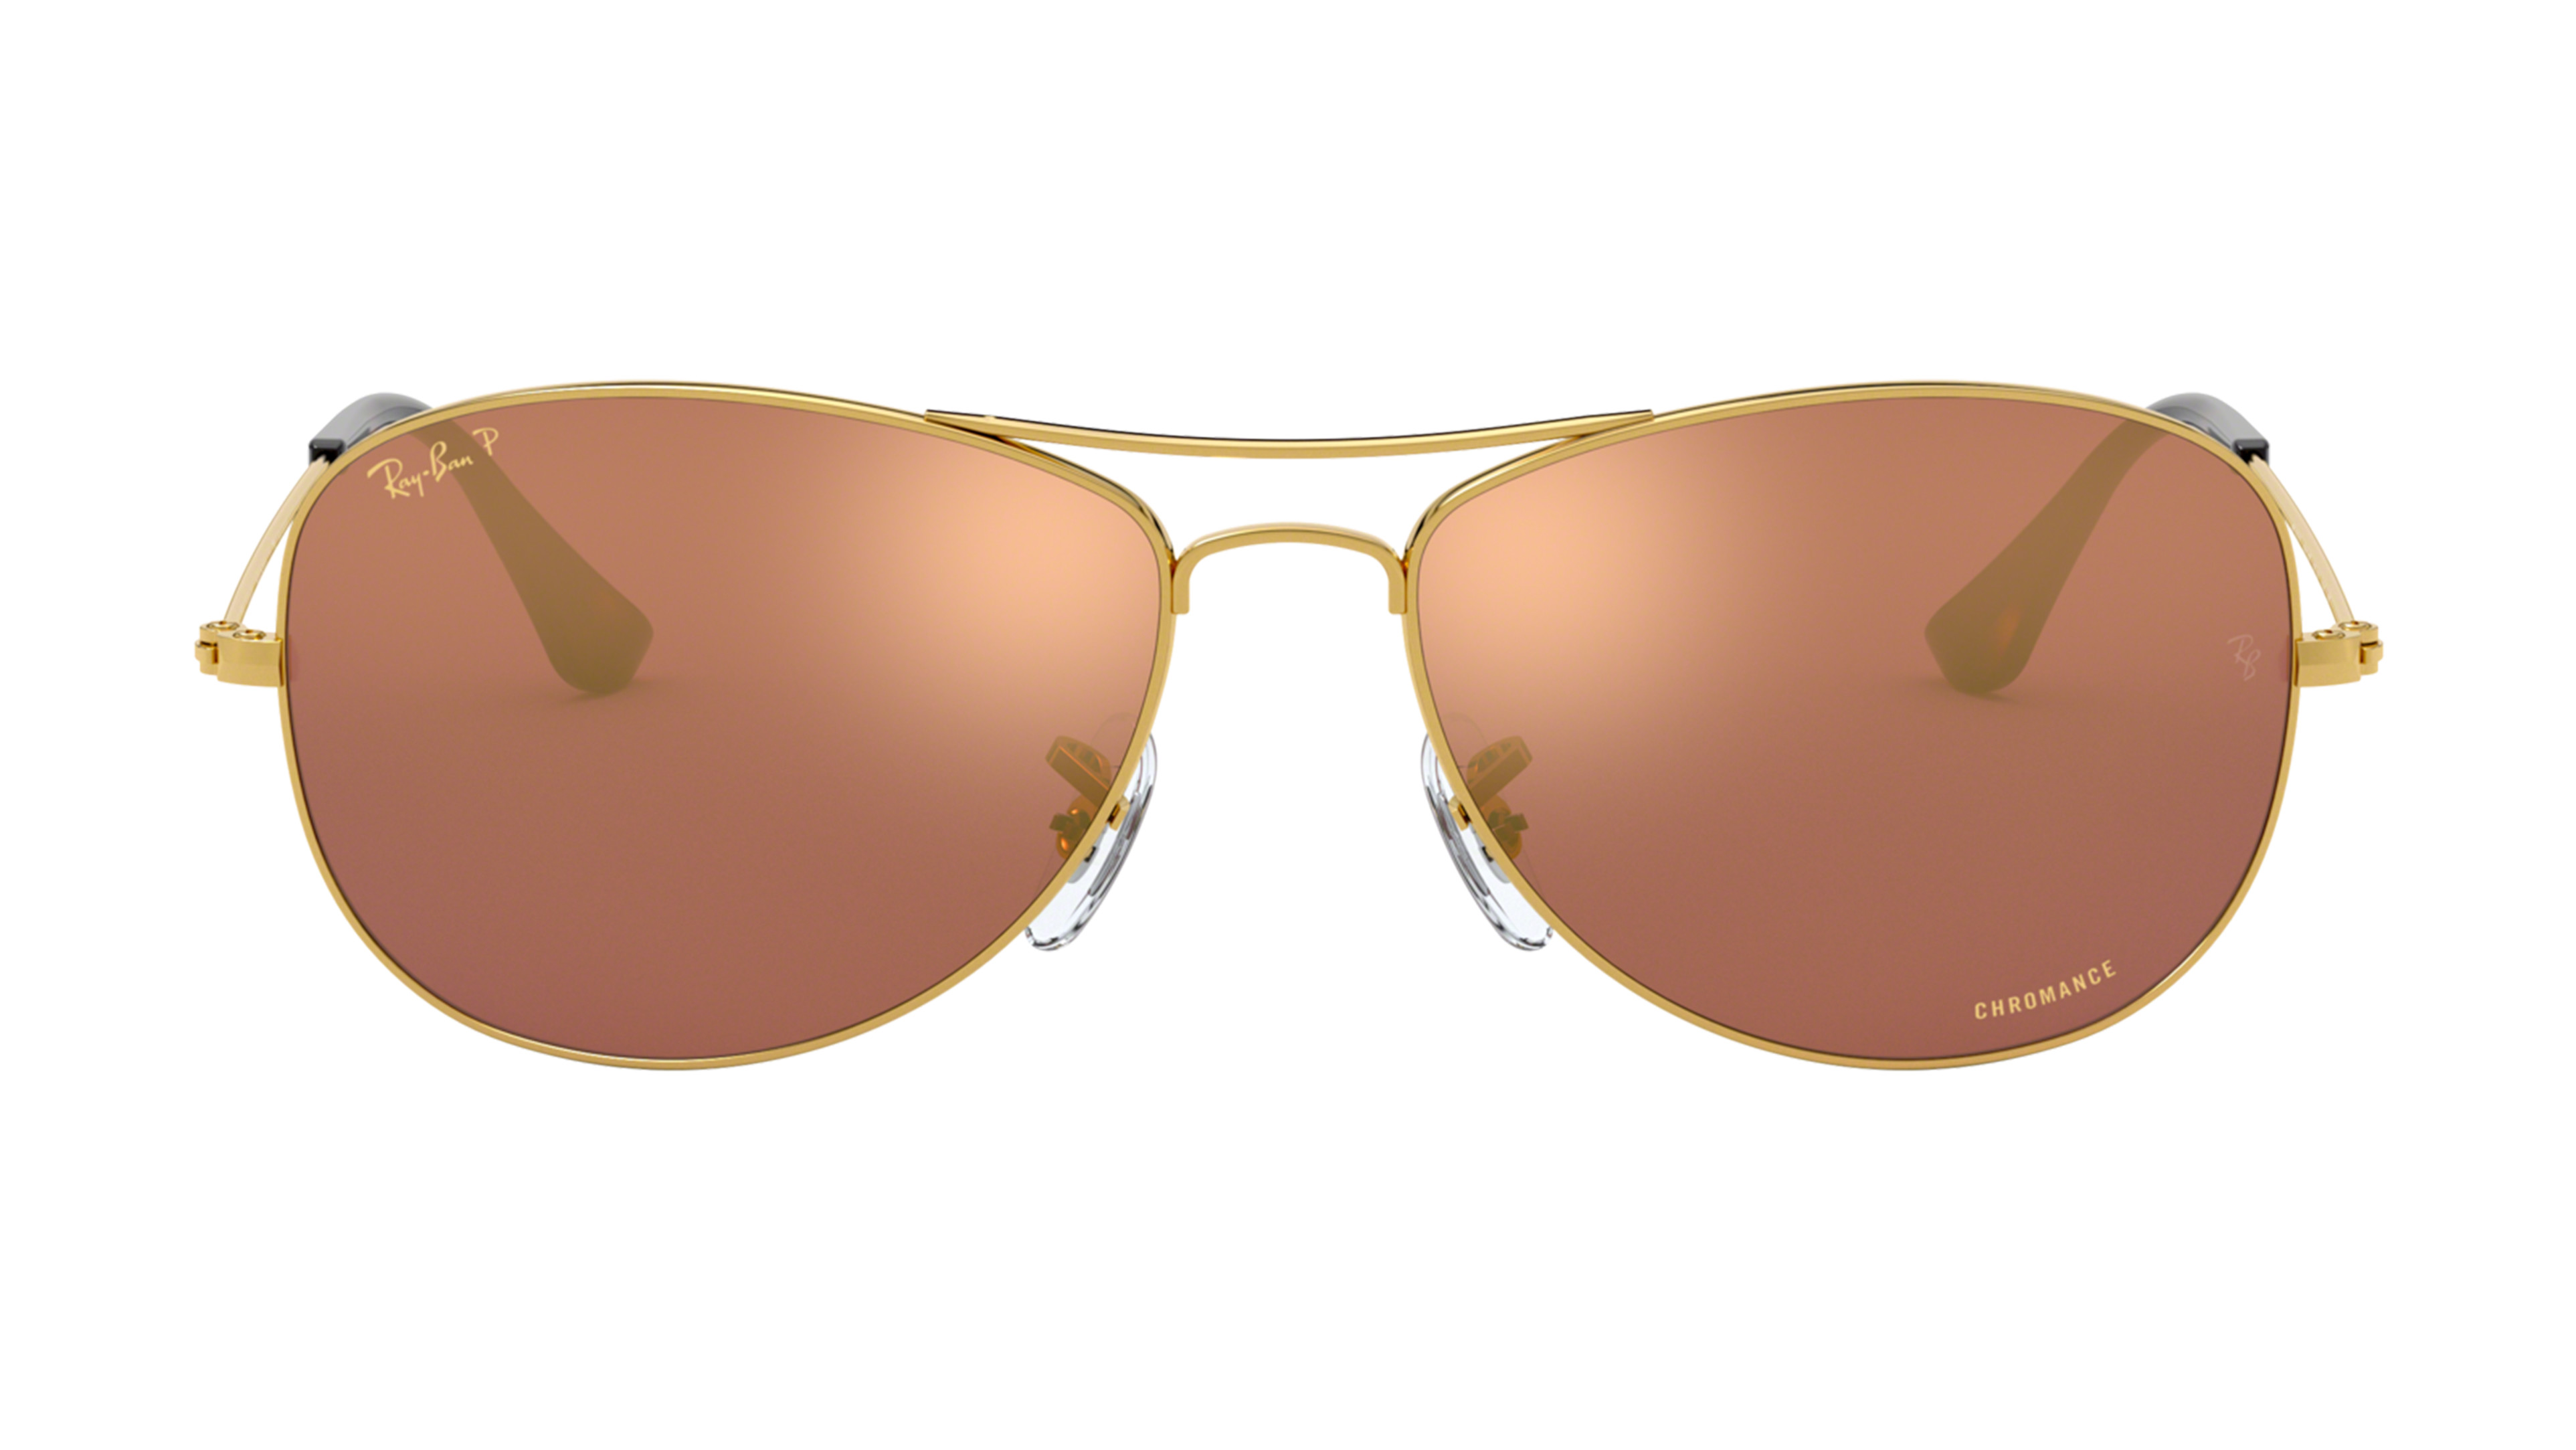 8053672645125-front-Ray-Ban-0RB3562-001-6B